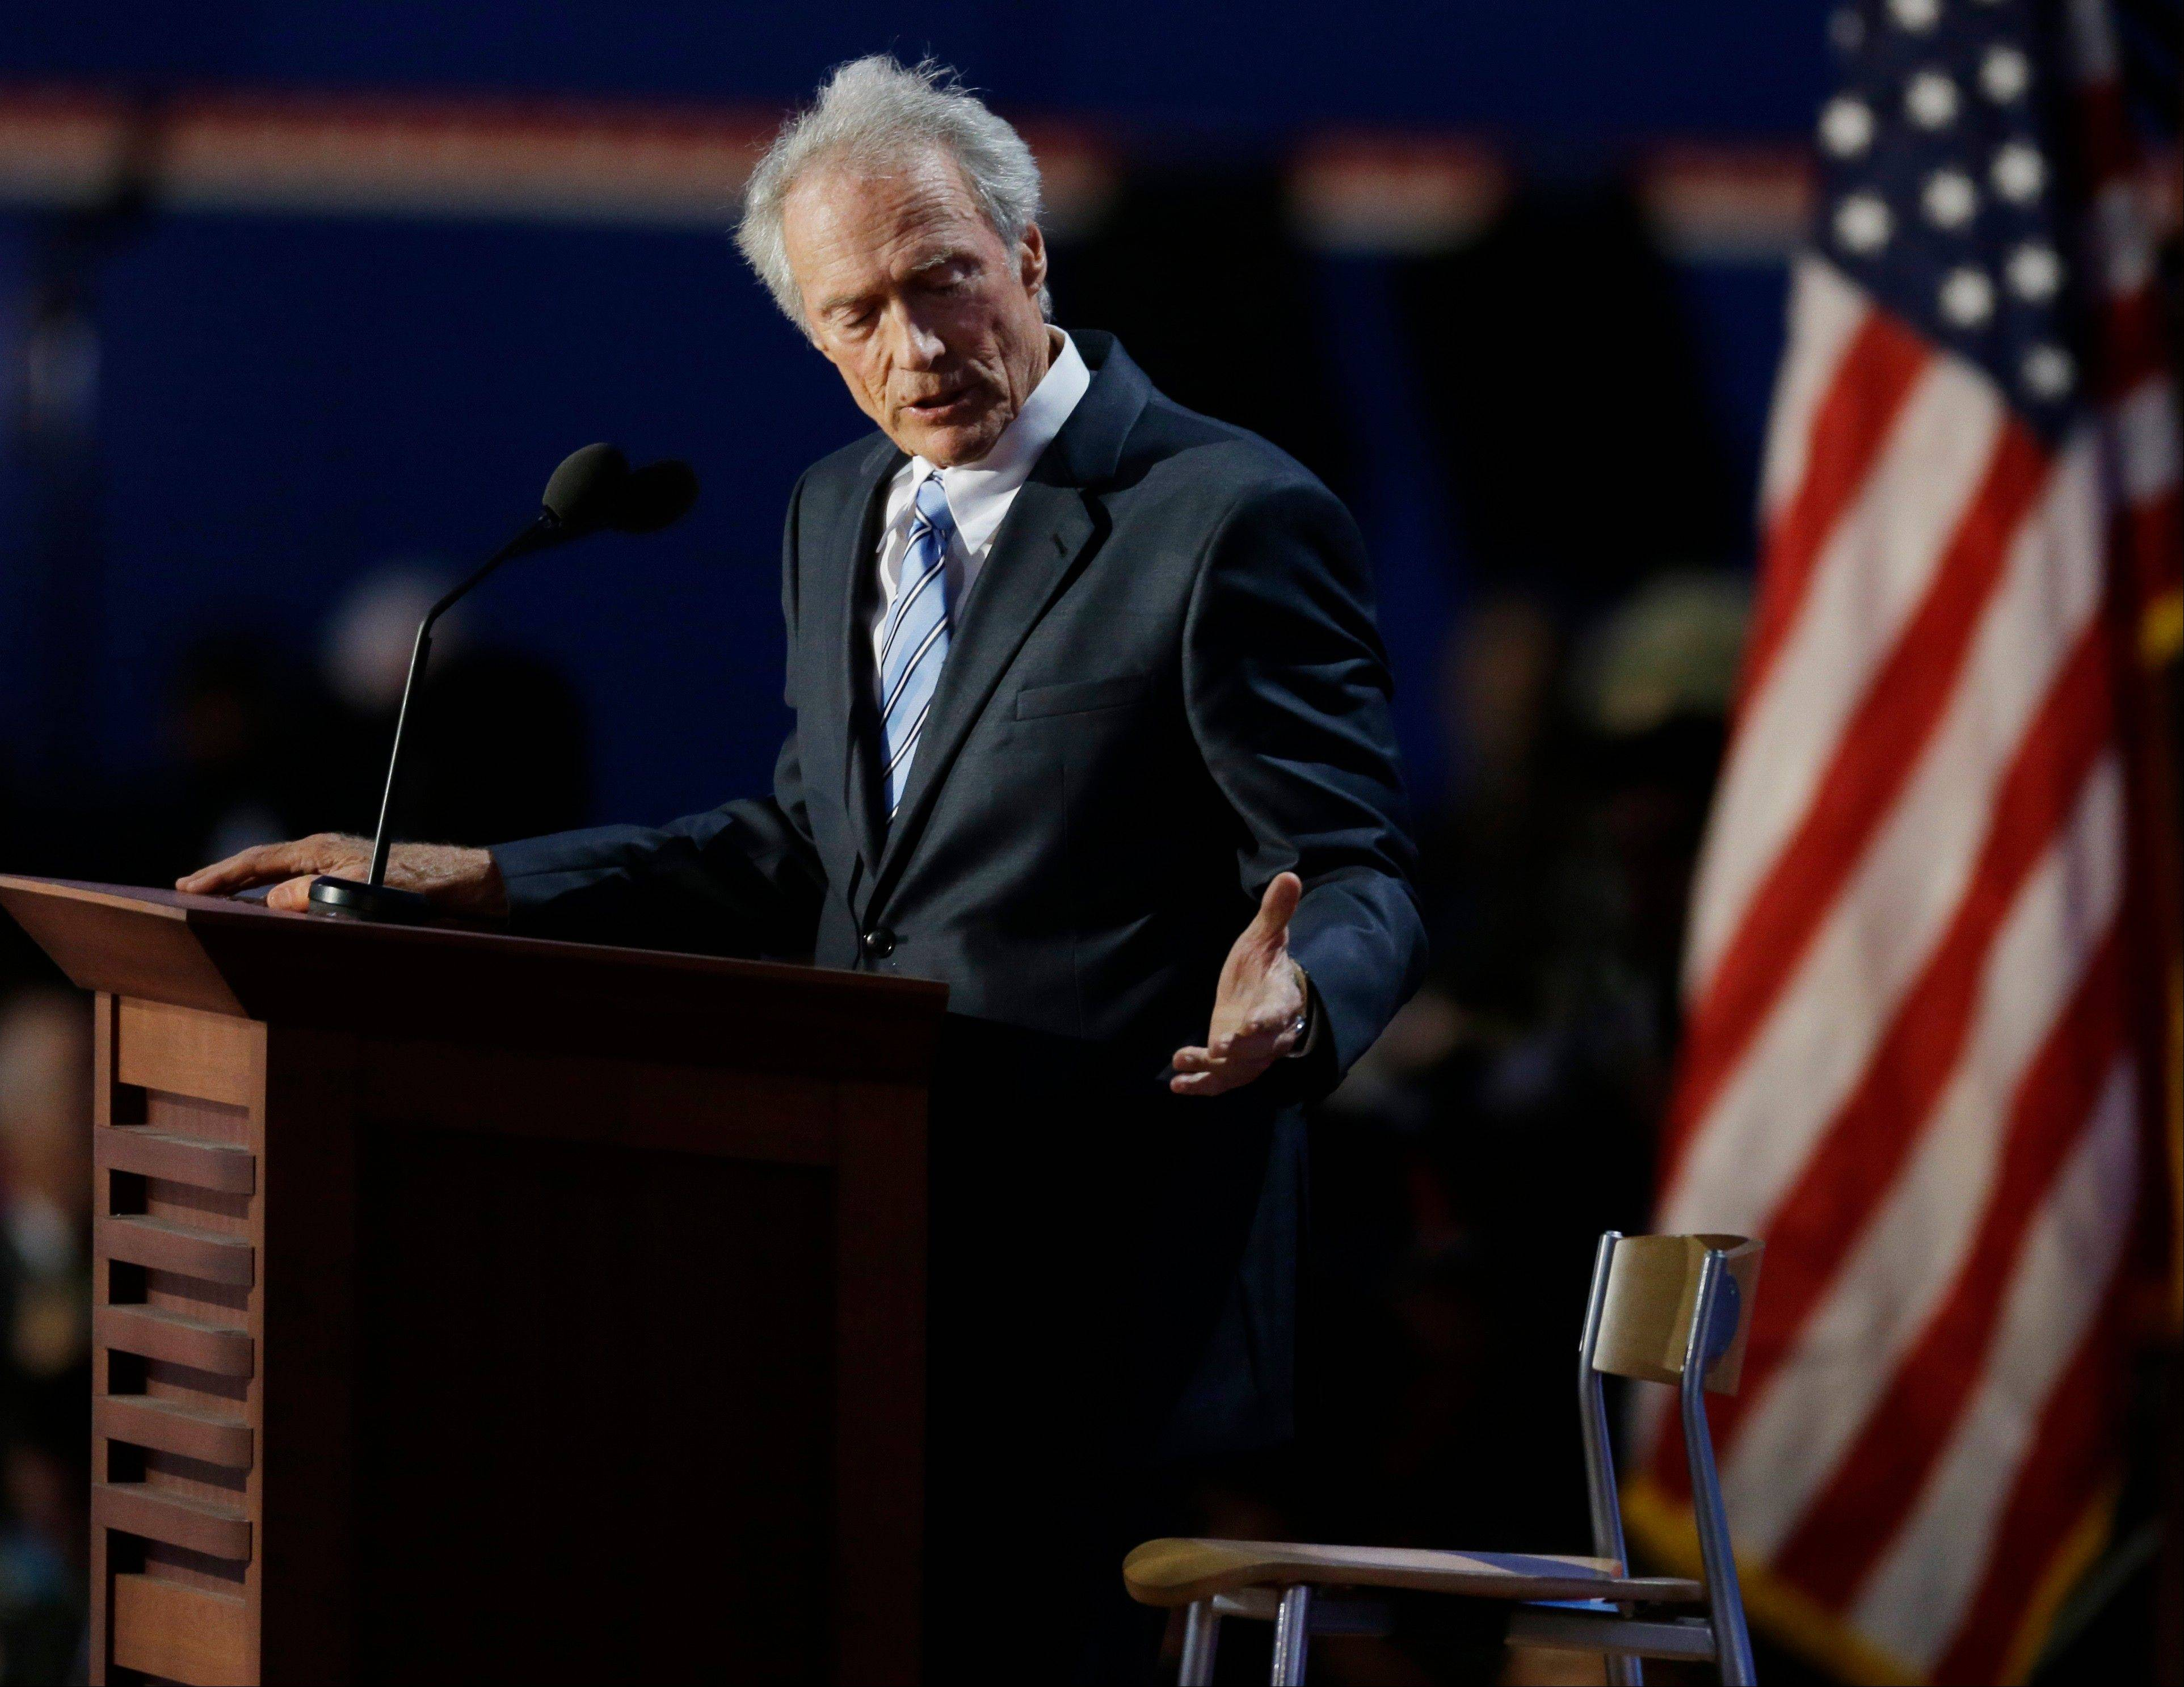 Actor Clint Eastwood speaks to an empty chair while addressing delegates during the Republican National Convention in Tampa, Fla., on Thursday, Aug. 30, 2012.